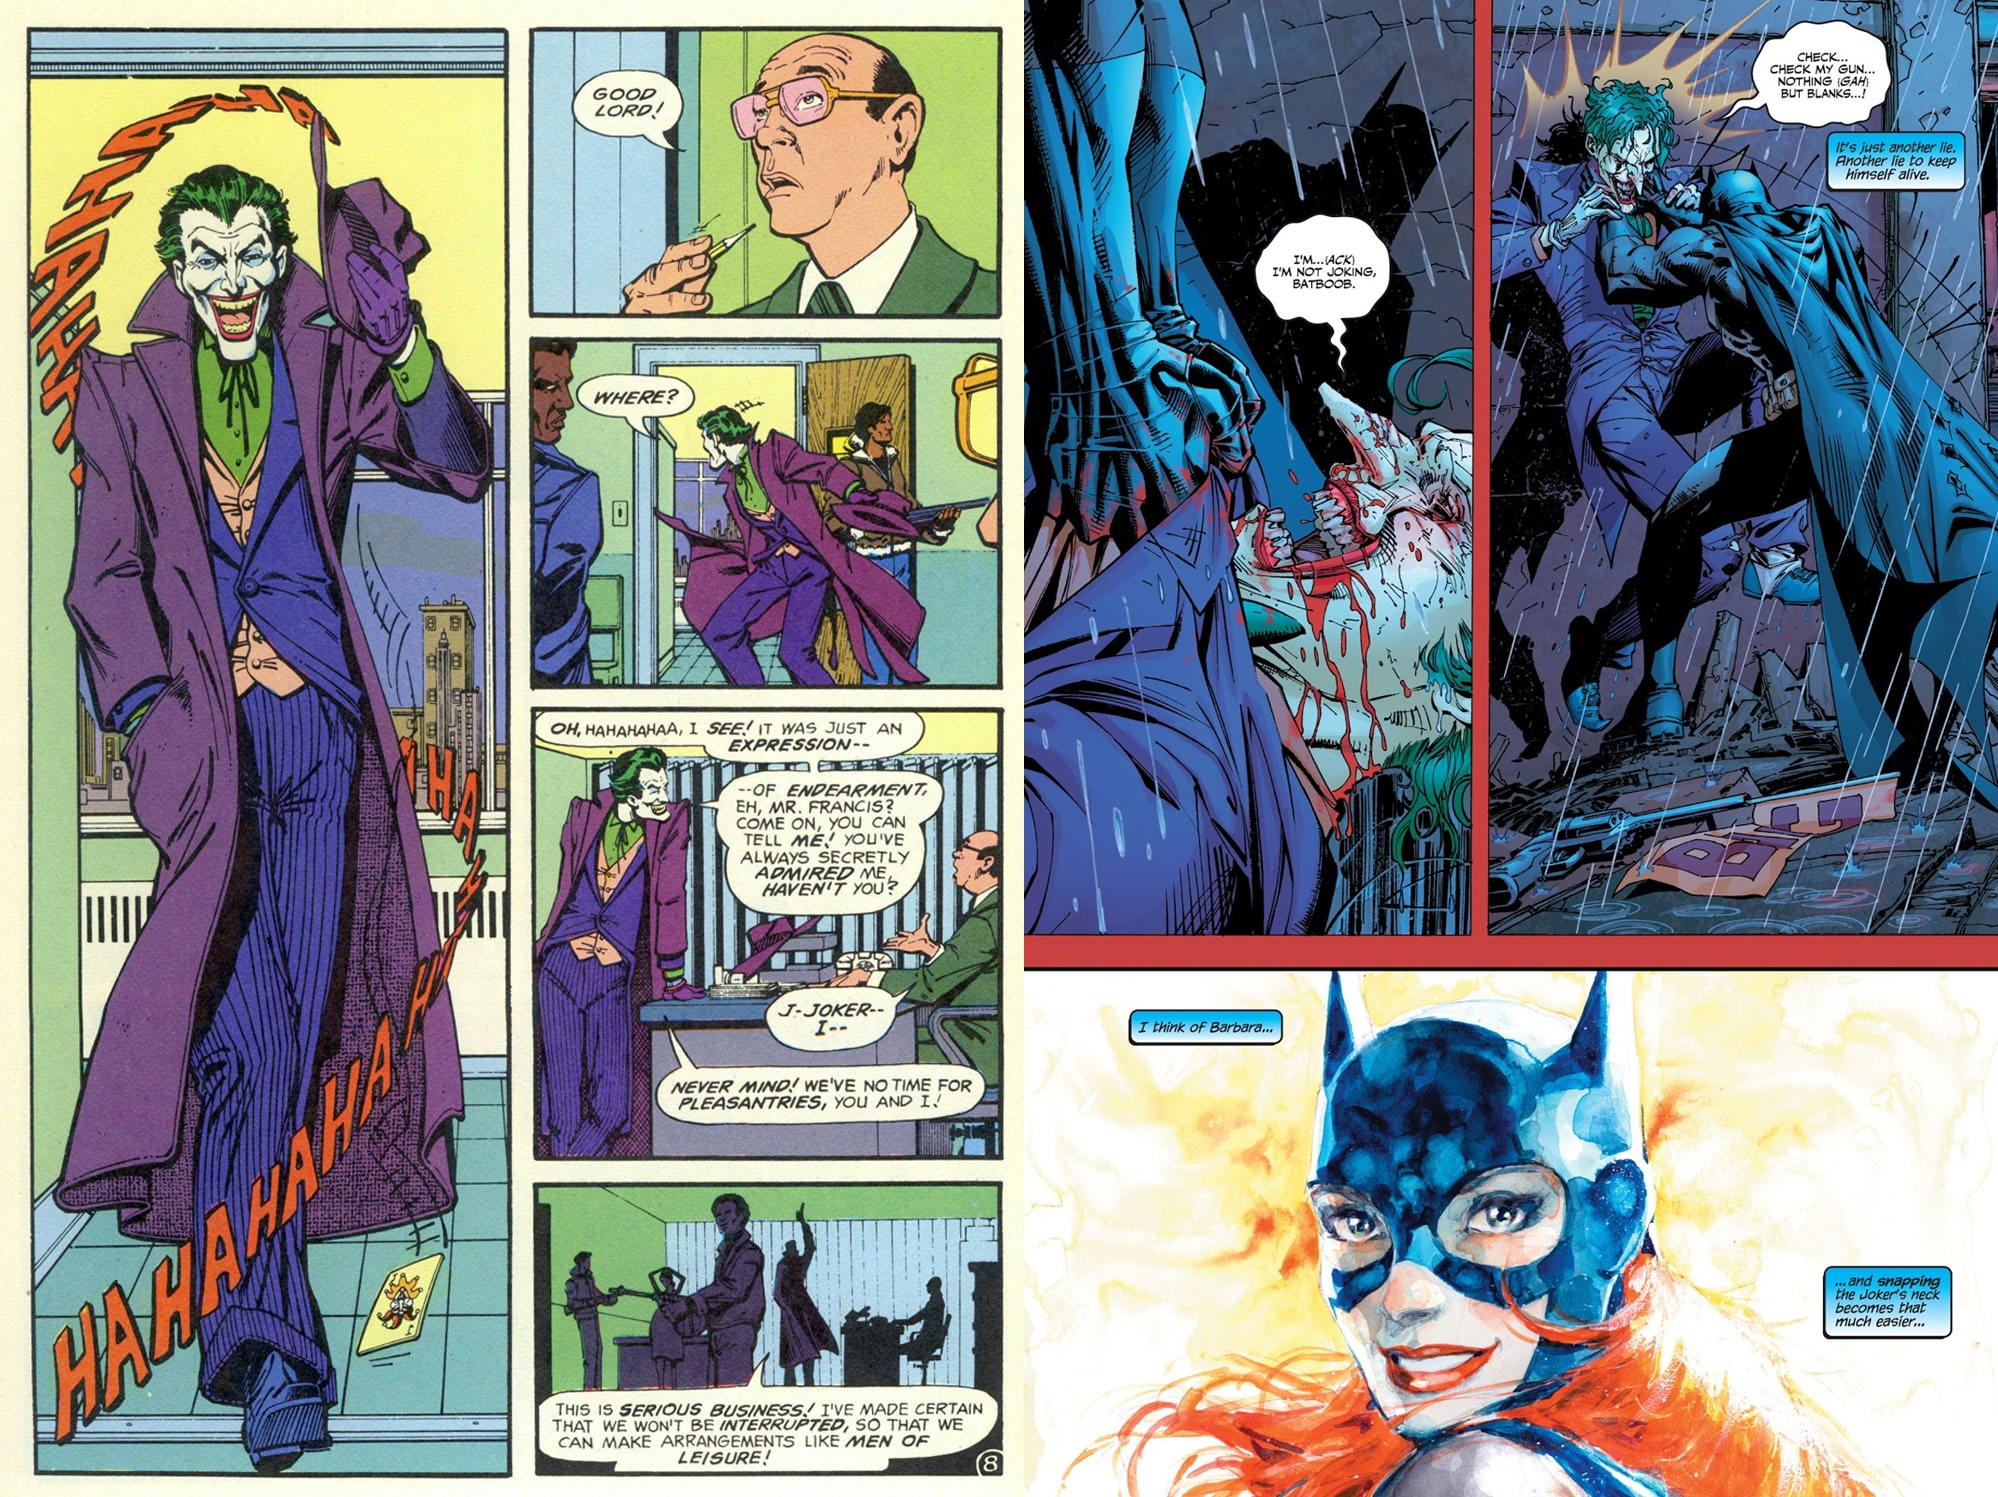 The Joker The Greatest Stories Ever Told review